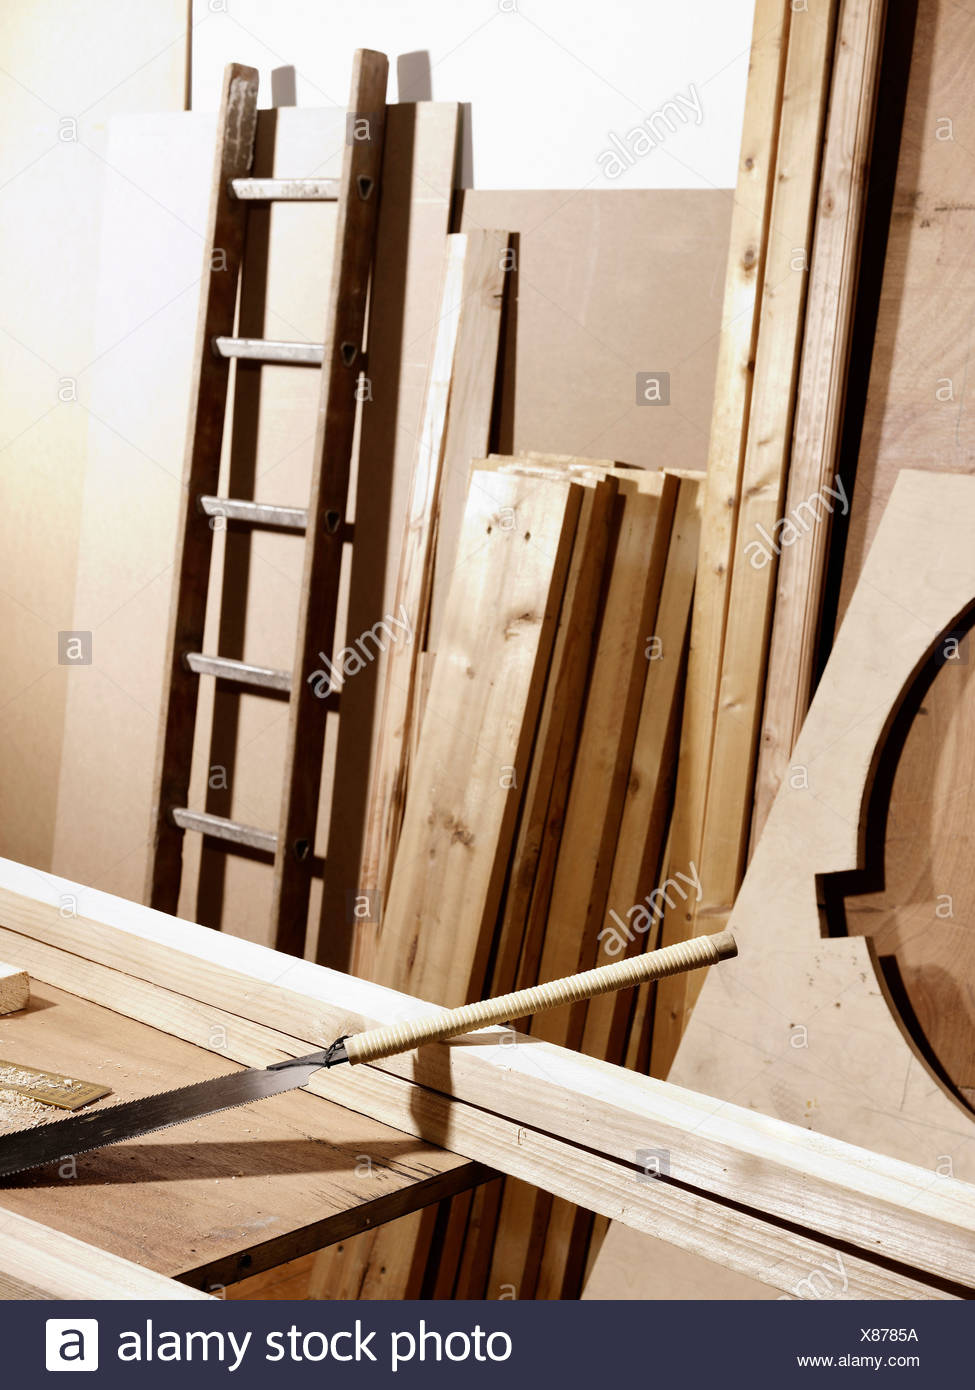 A work bench and planks of wood - Stock Image